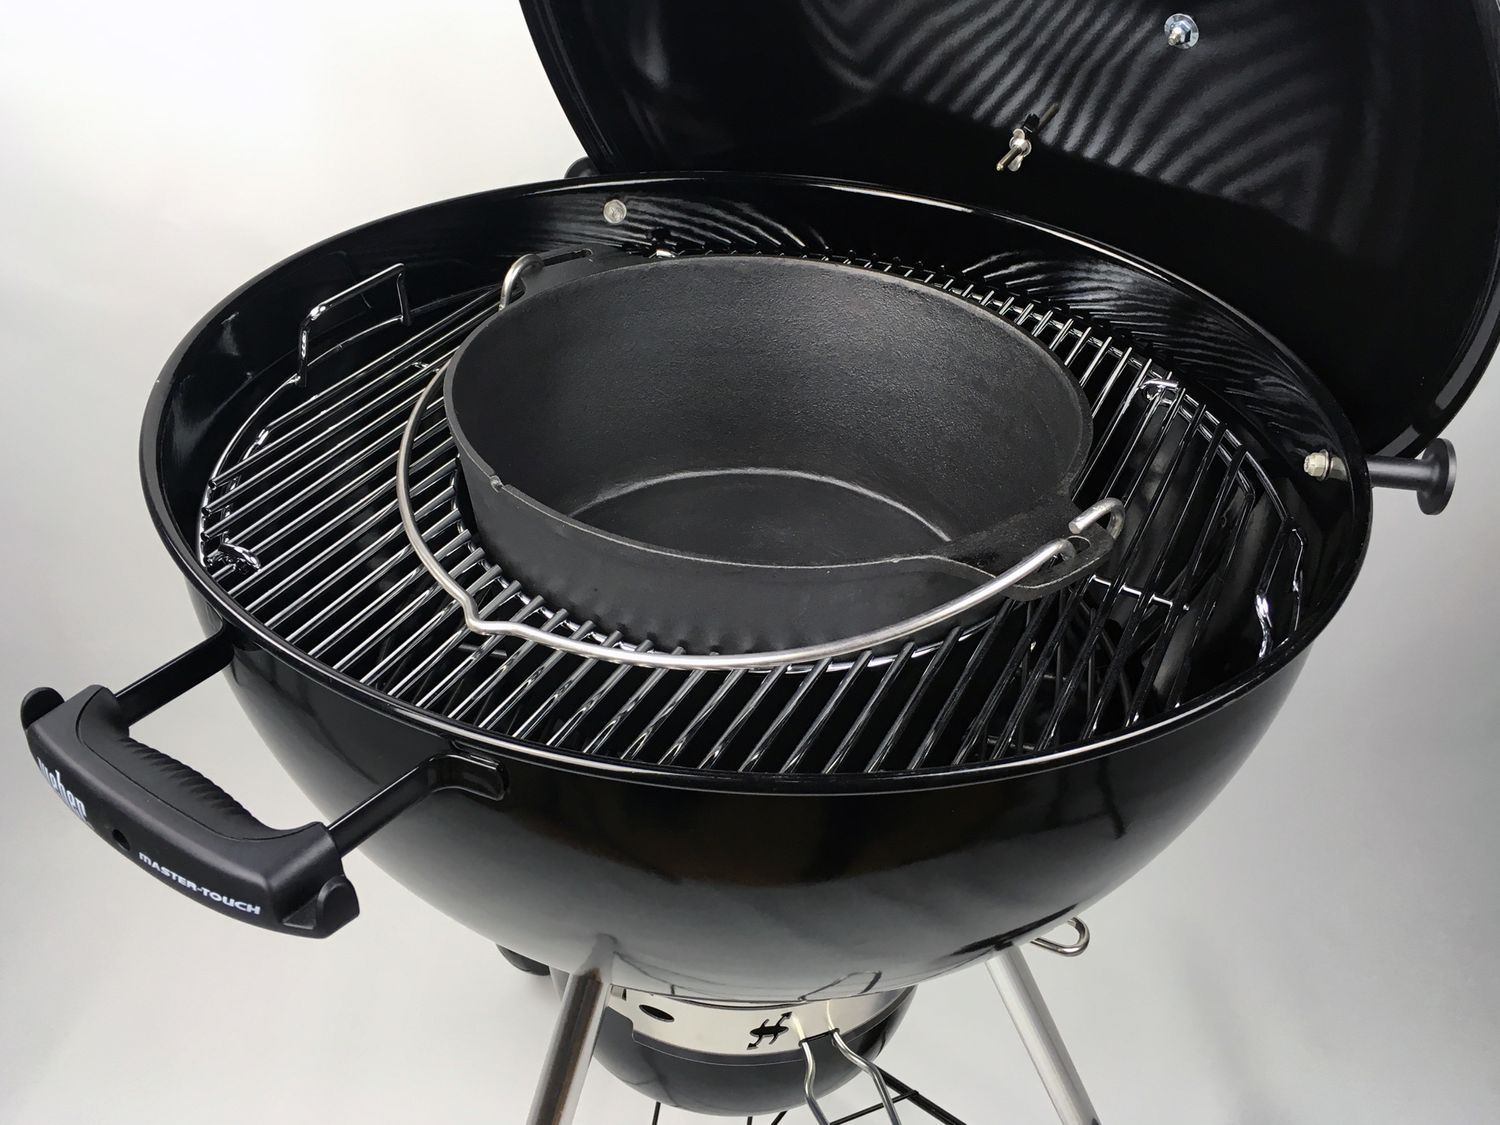 Weber Holzkohlegrill Grill Anleitung : Weber anzündkamin rapidfire youtube